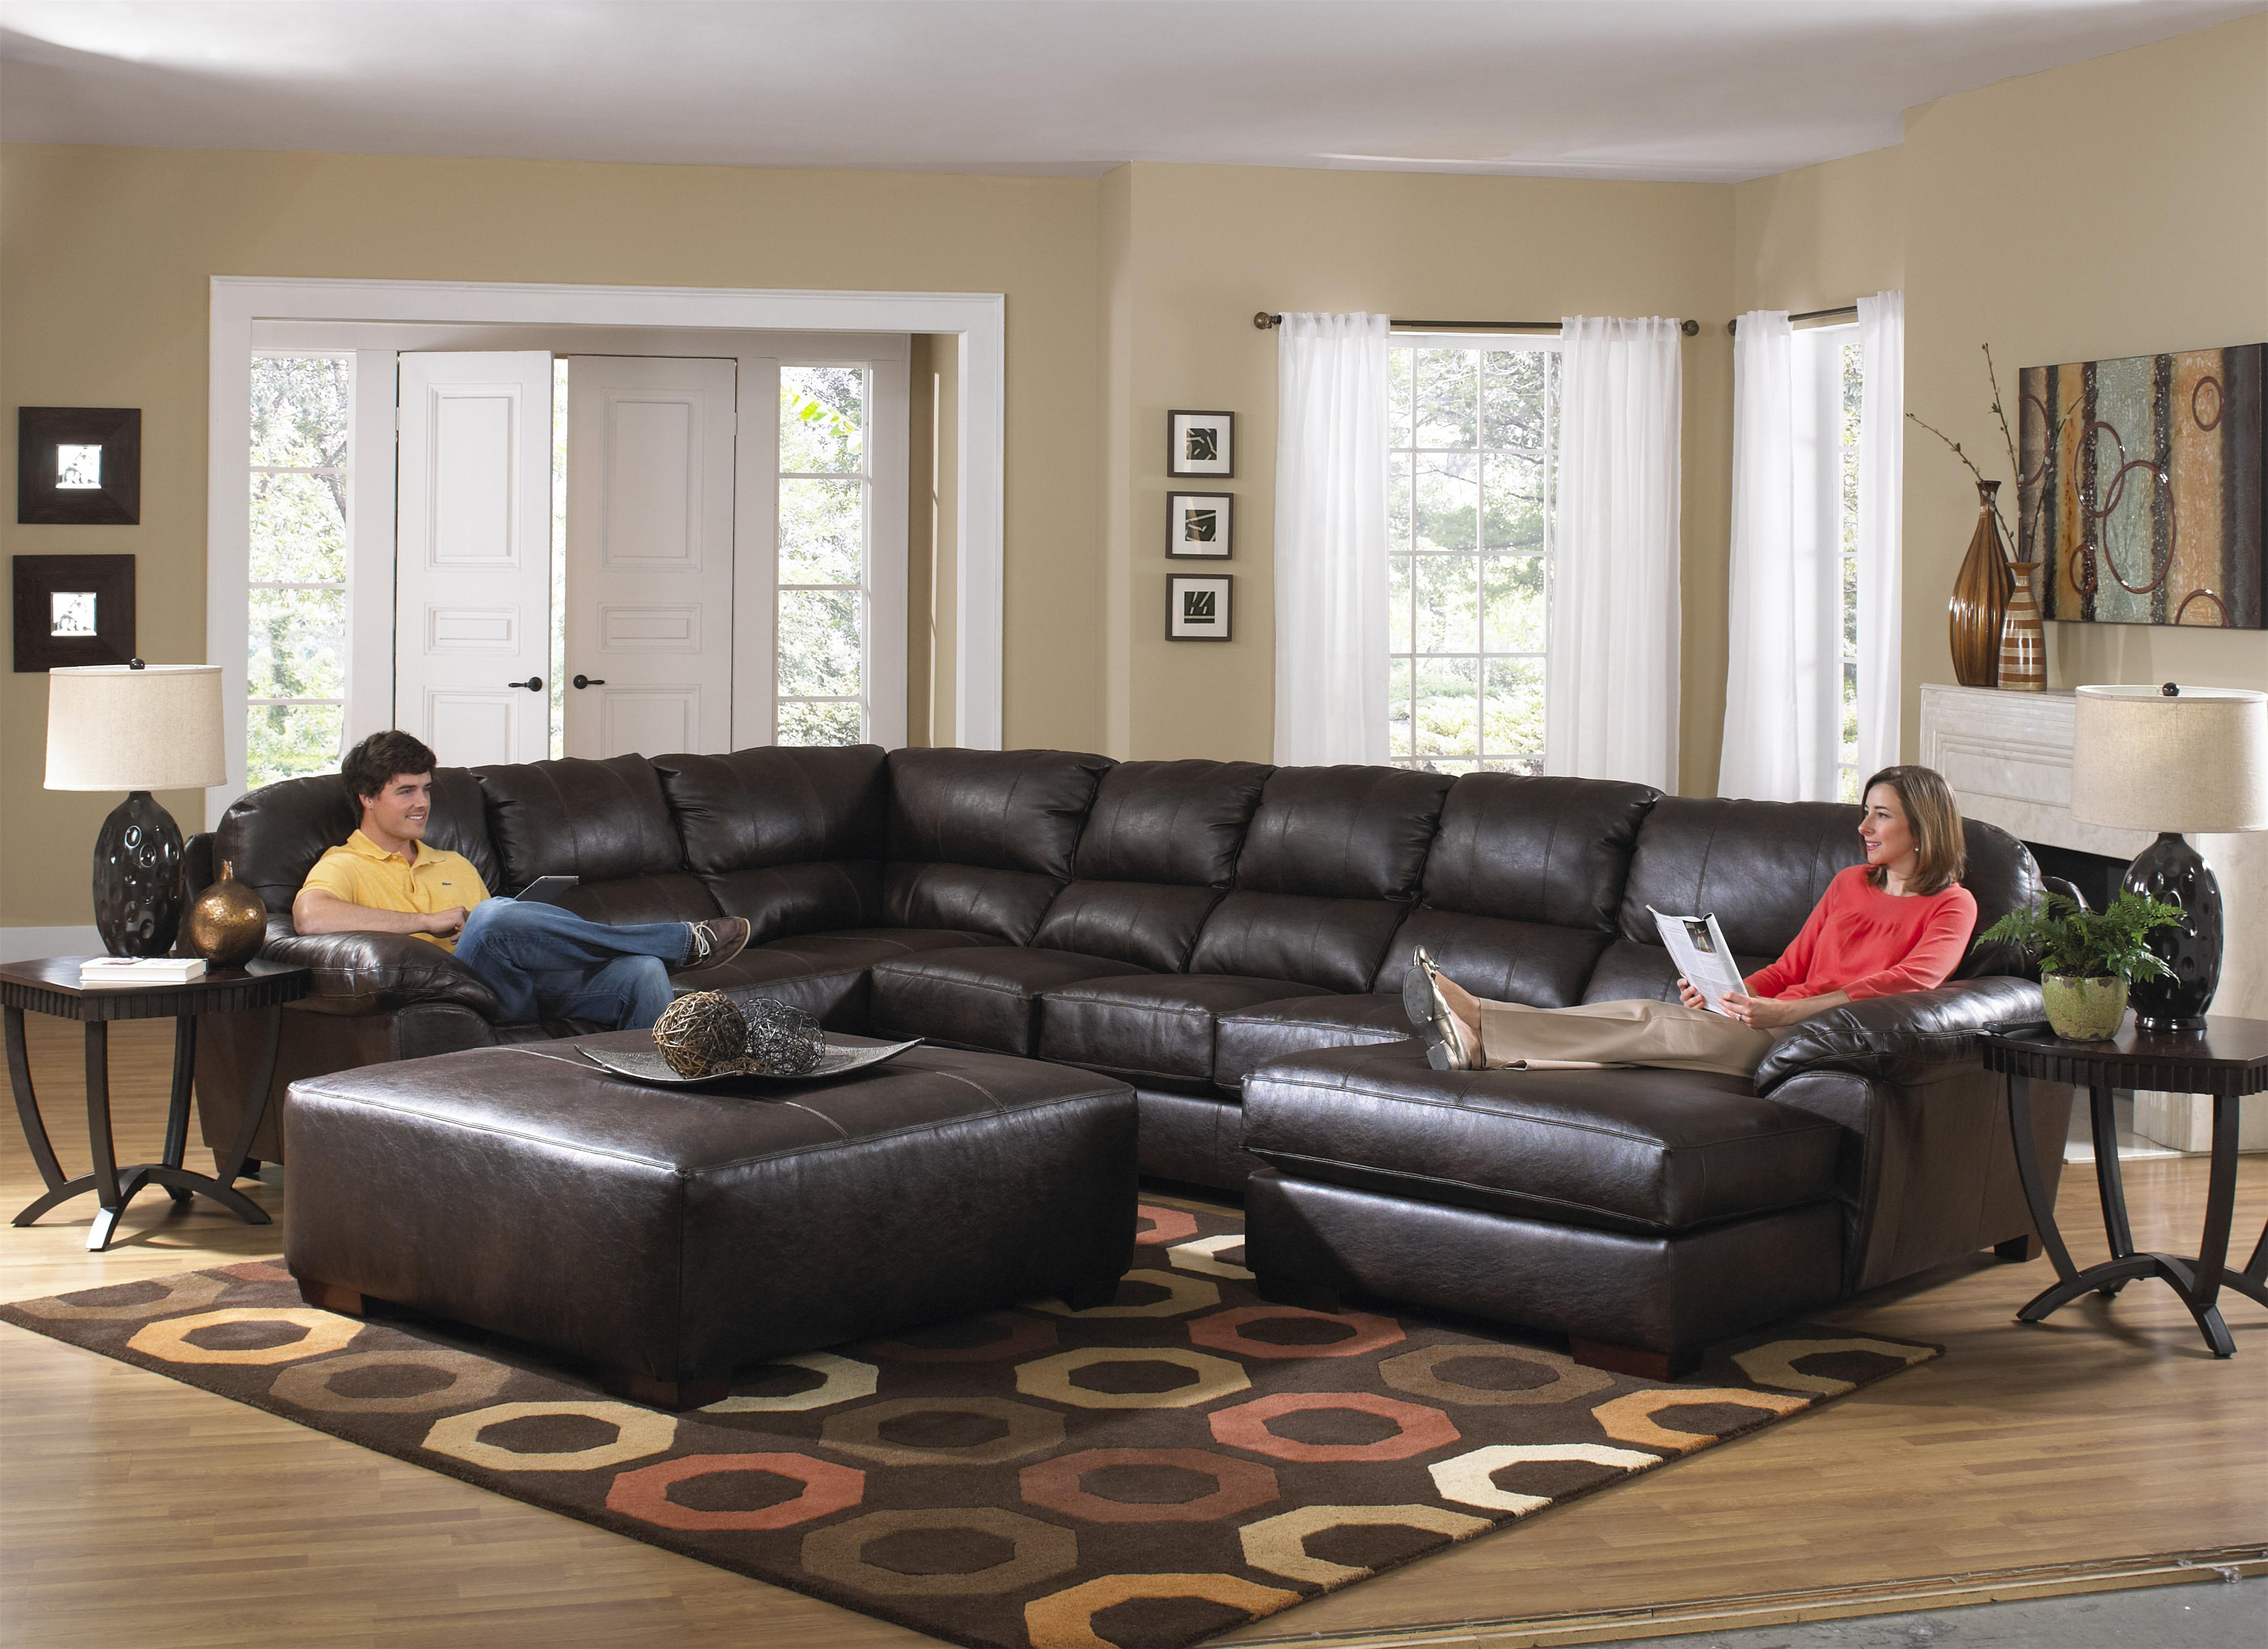 Jackson Furniture Lawson Extra Large Seven Seat Sectional Westrich Liances Sofas